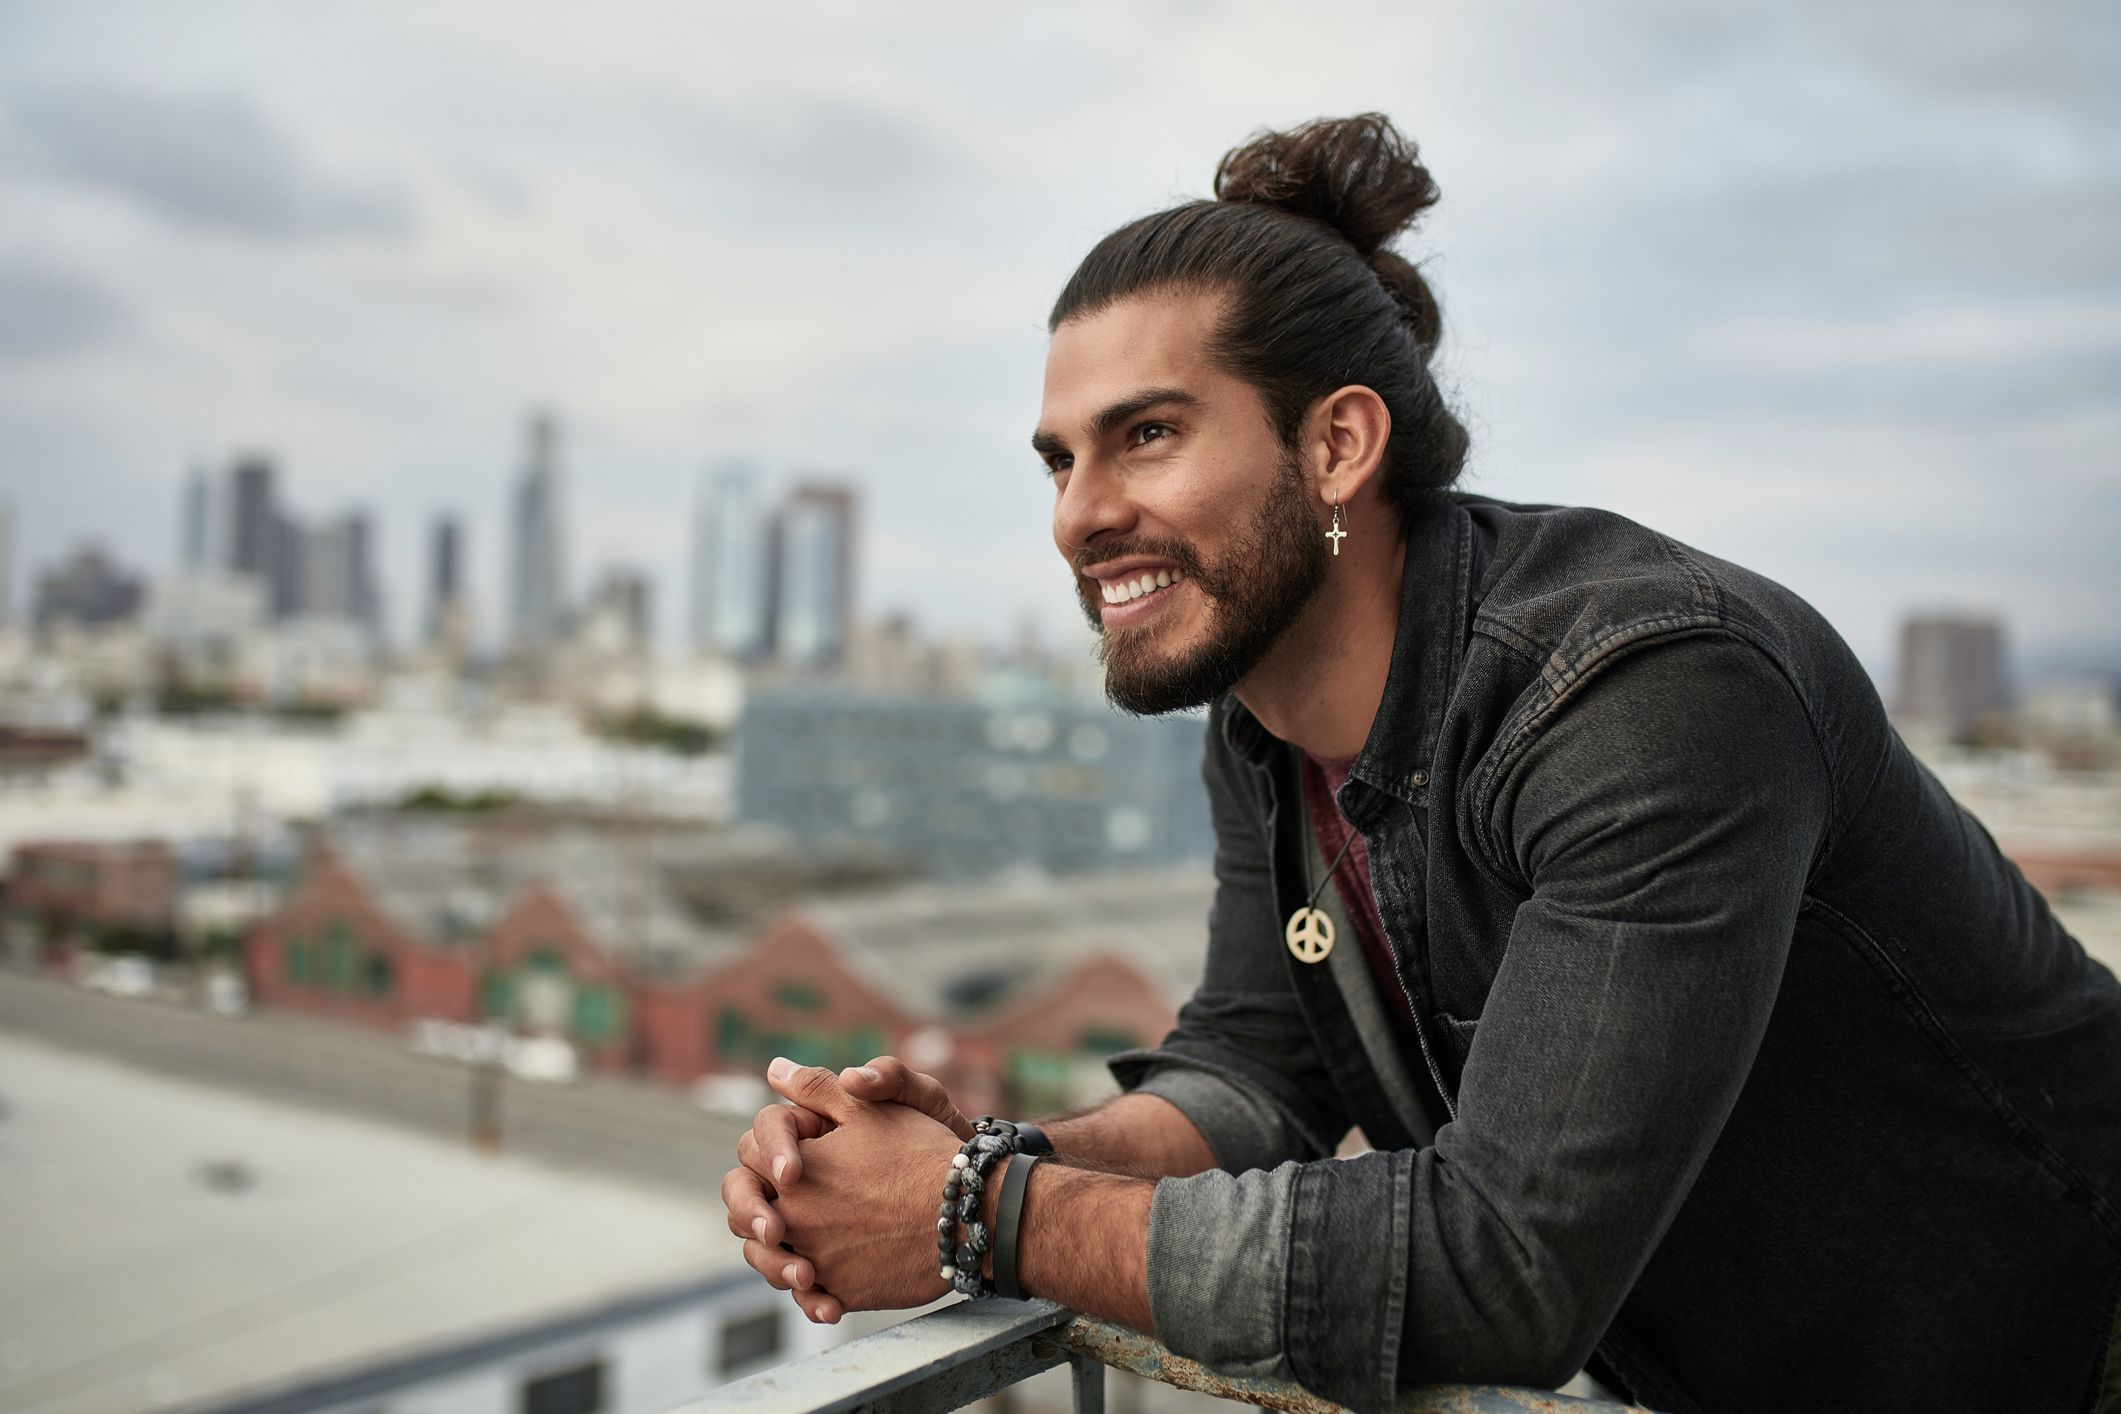 A Grooming Expert S Tips For Styling Long Hair Without Washing It